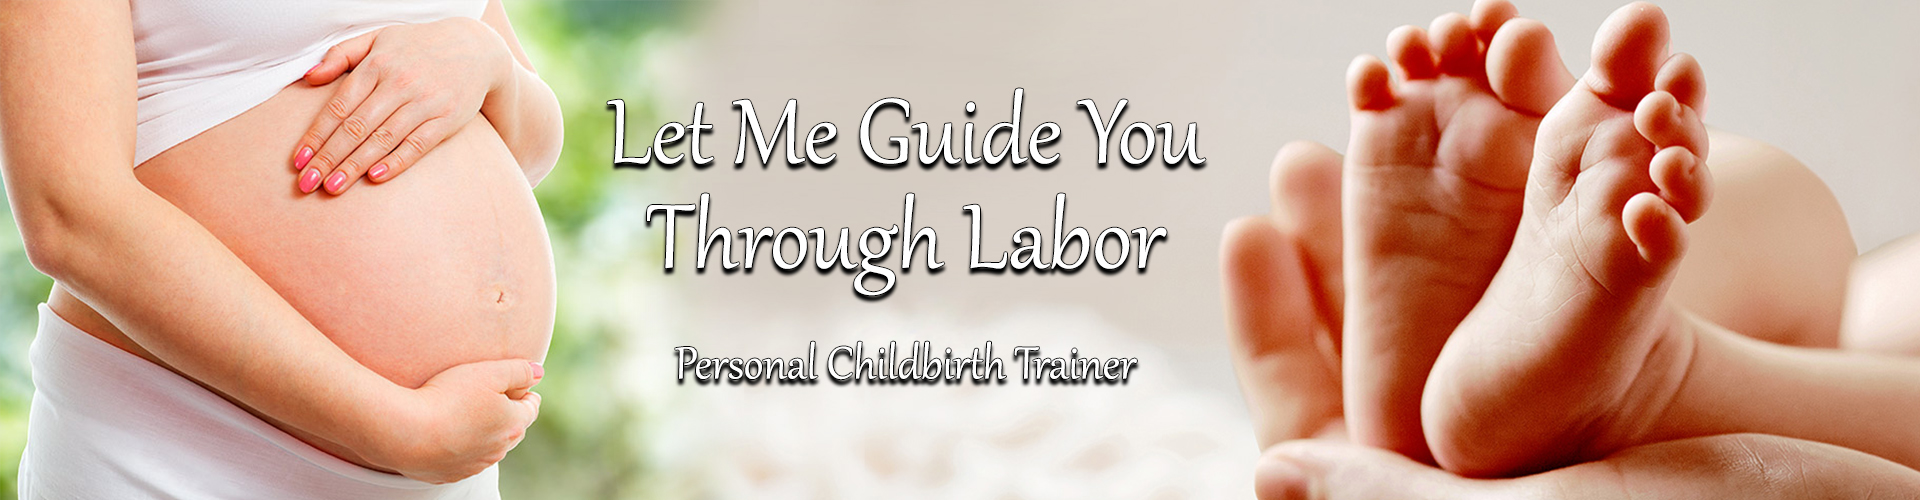 Personal Childbirth Trainer